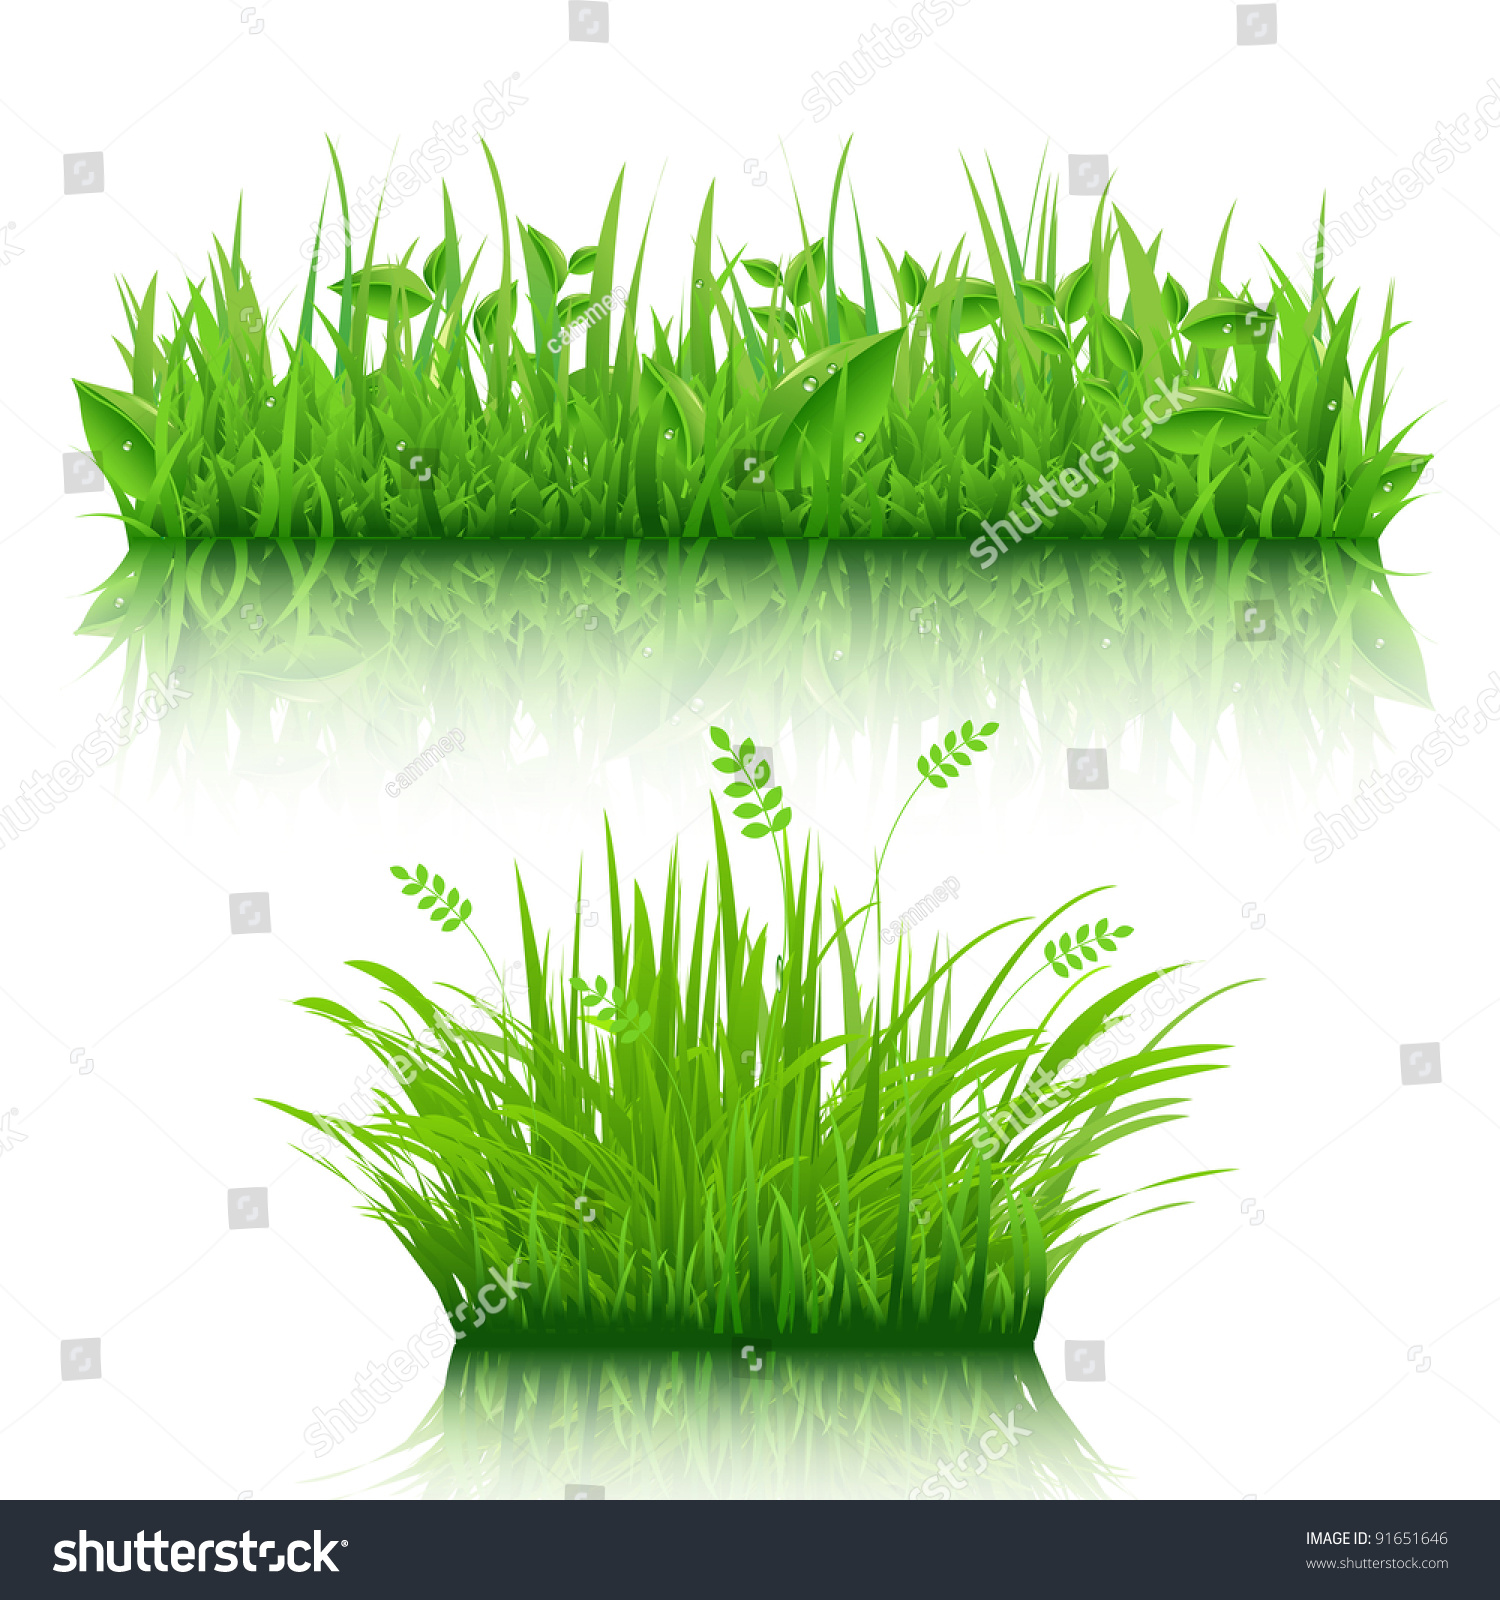 Mesmerizing grass vector pictures